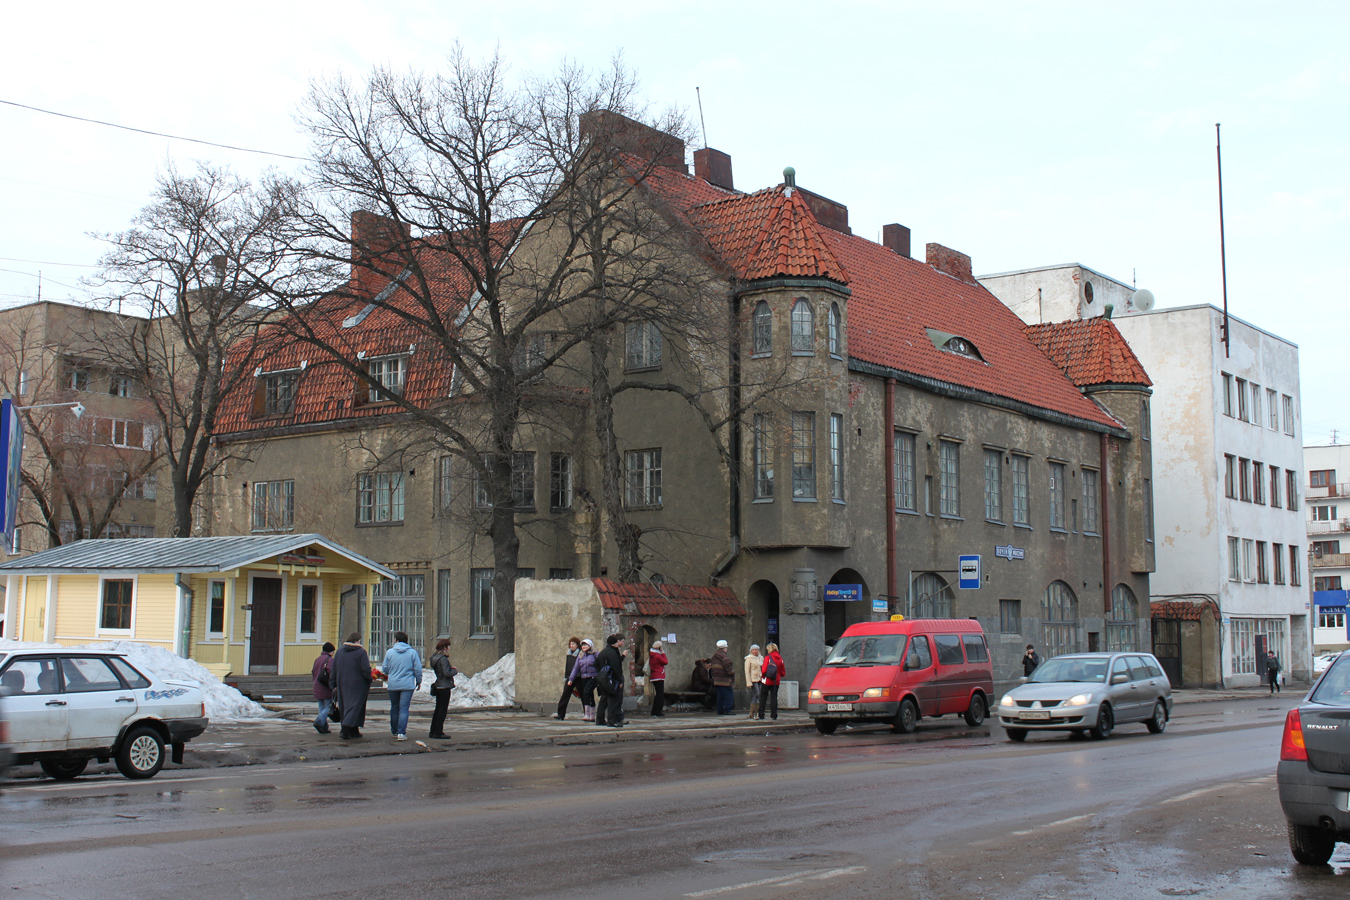 February 22, 2013. Sortavala. The United Bank of the Northern Countries